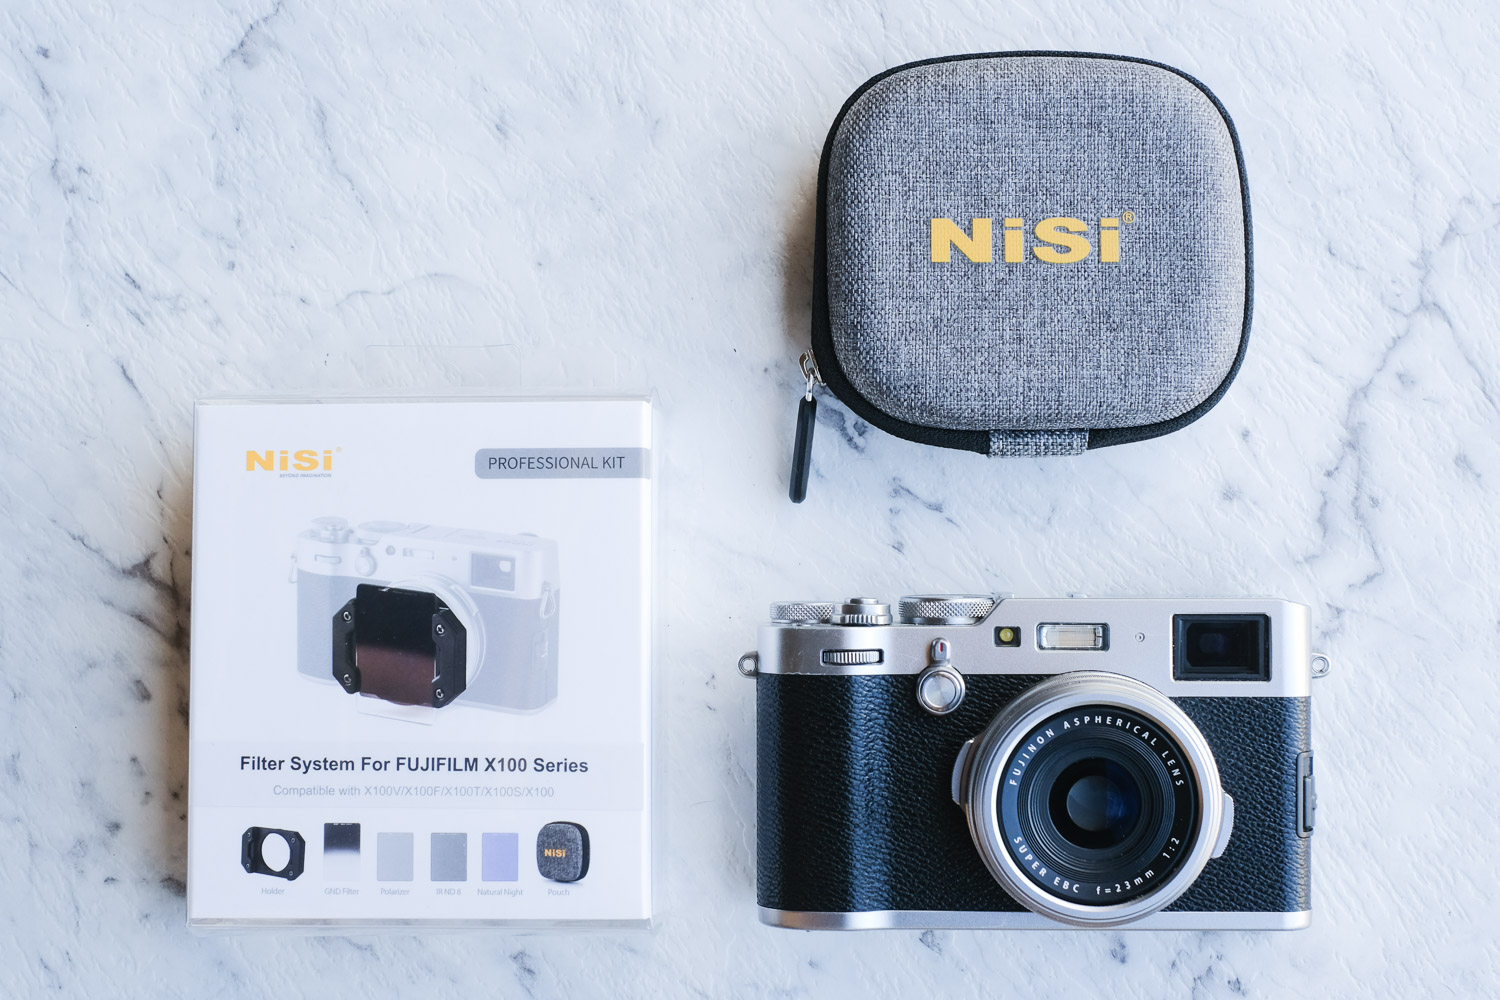 NiSi filter system review (with the system displayed)